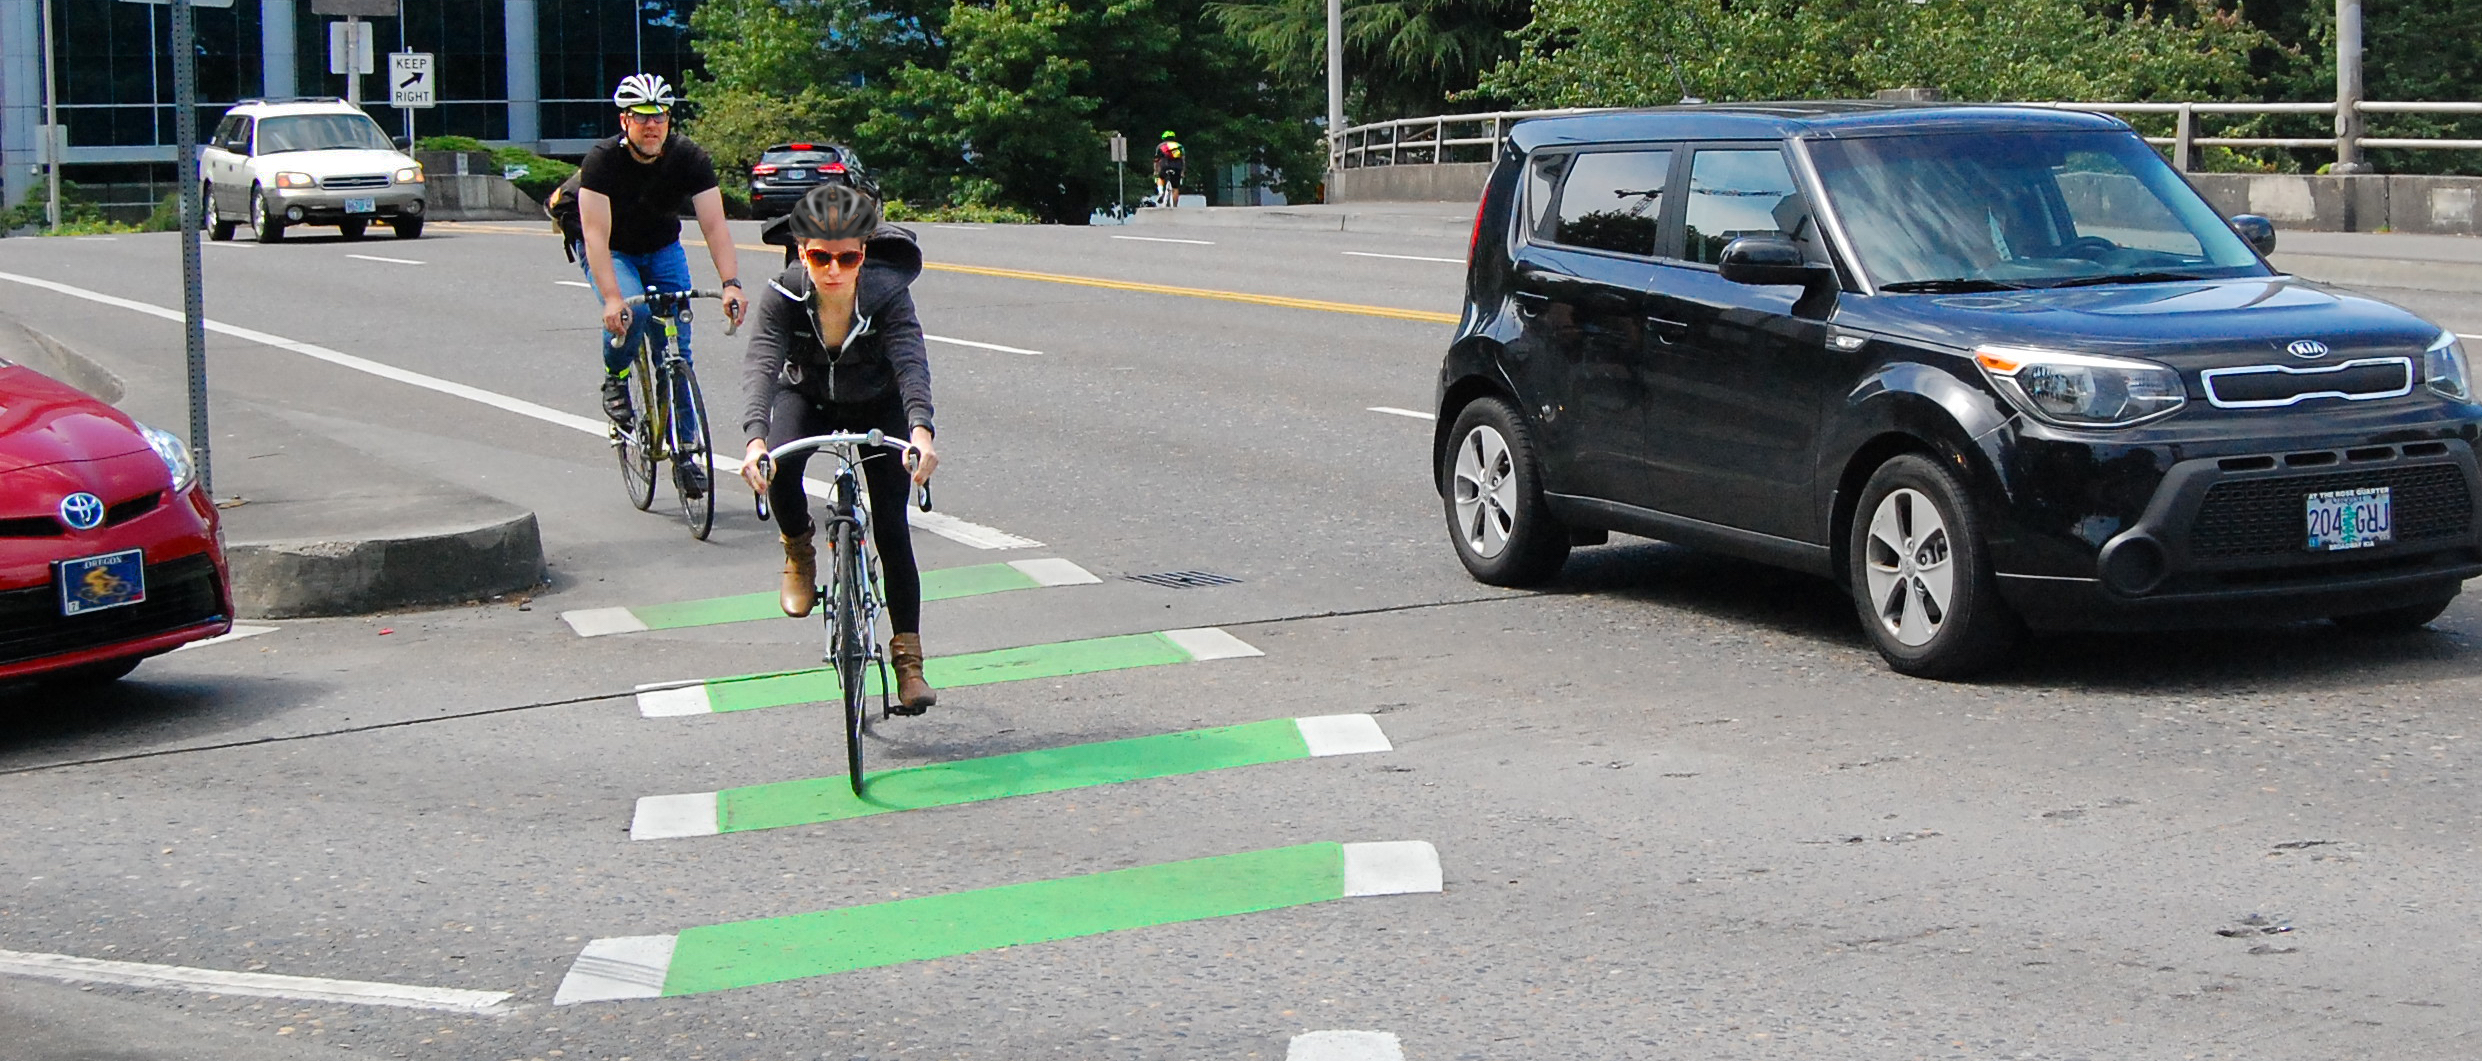 Bicyclists ride in a painted bike lane, defined by green stripes